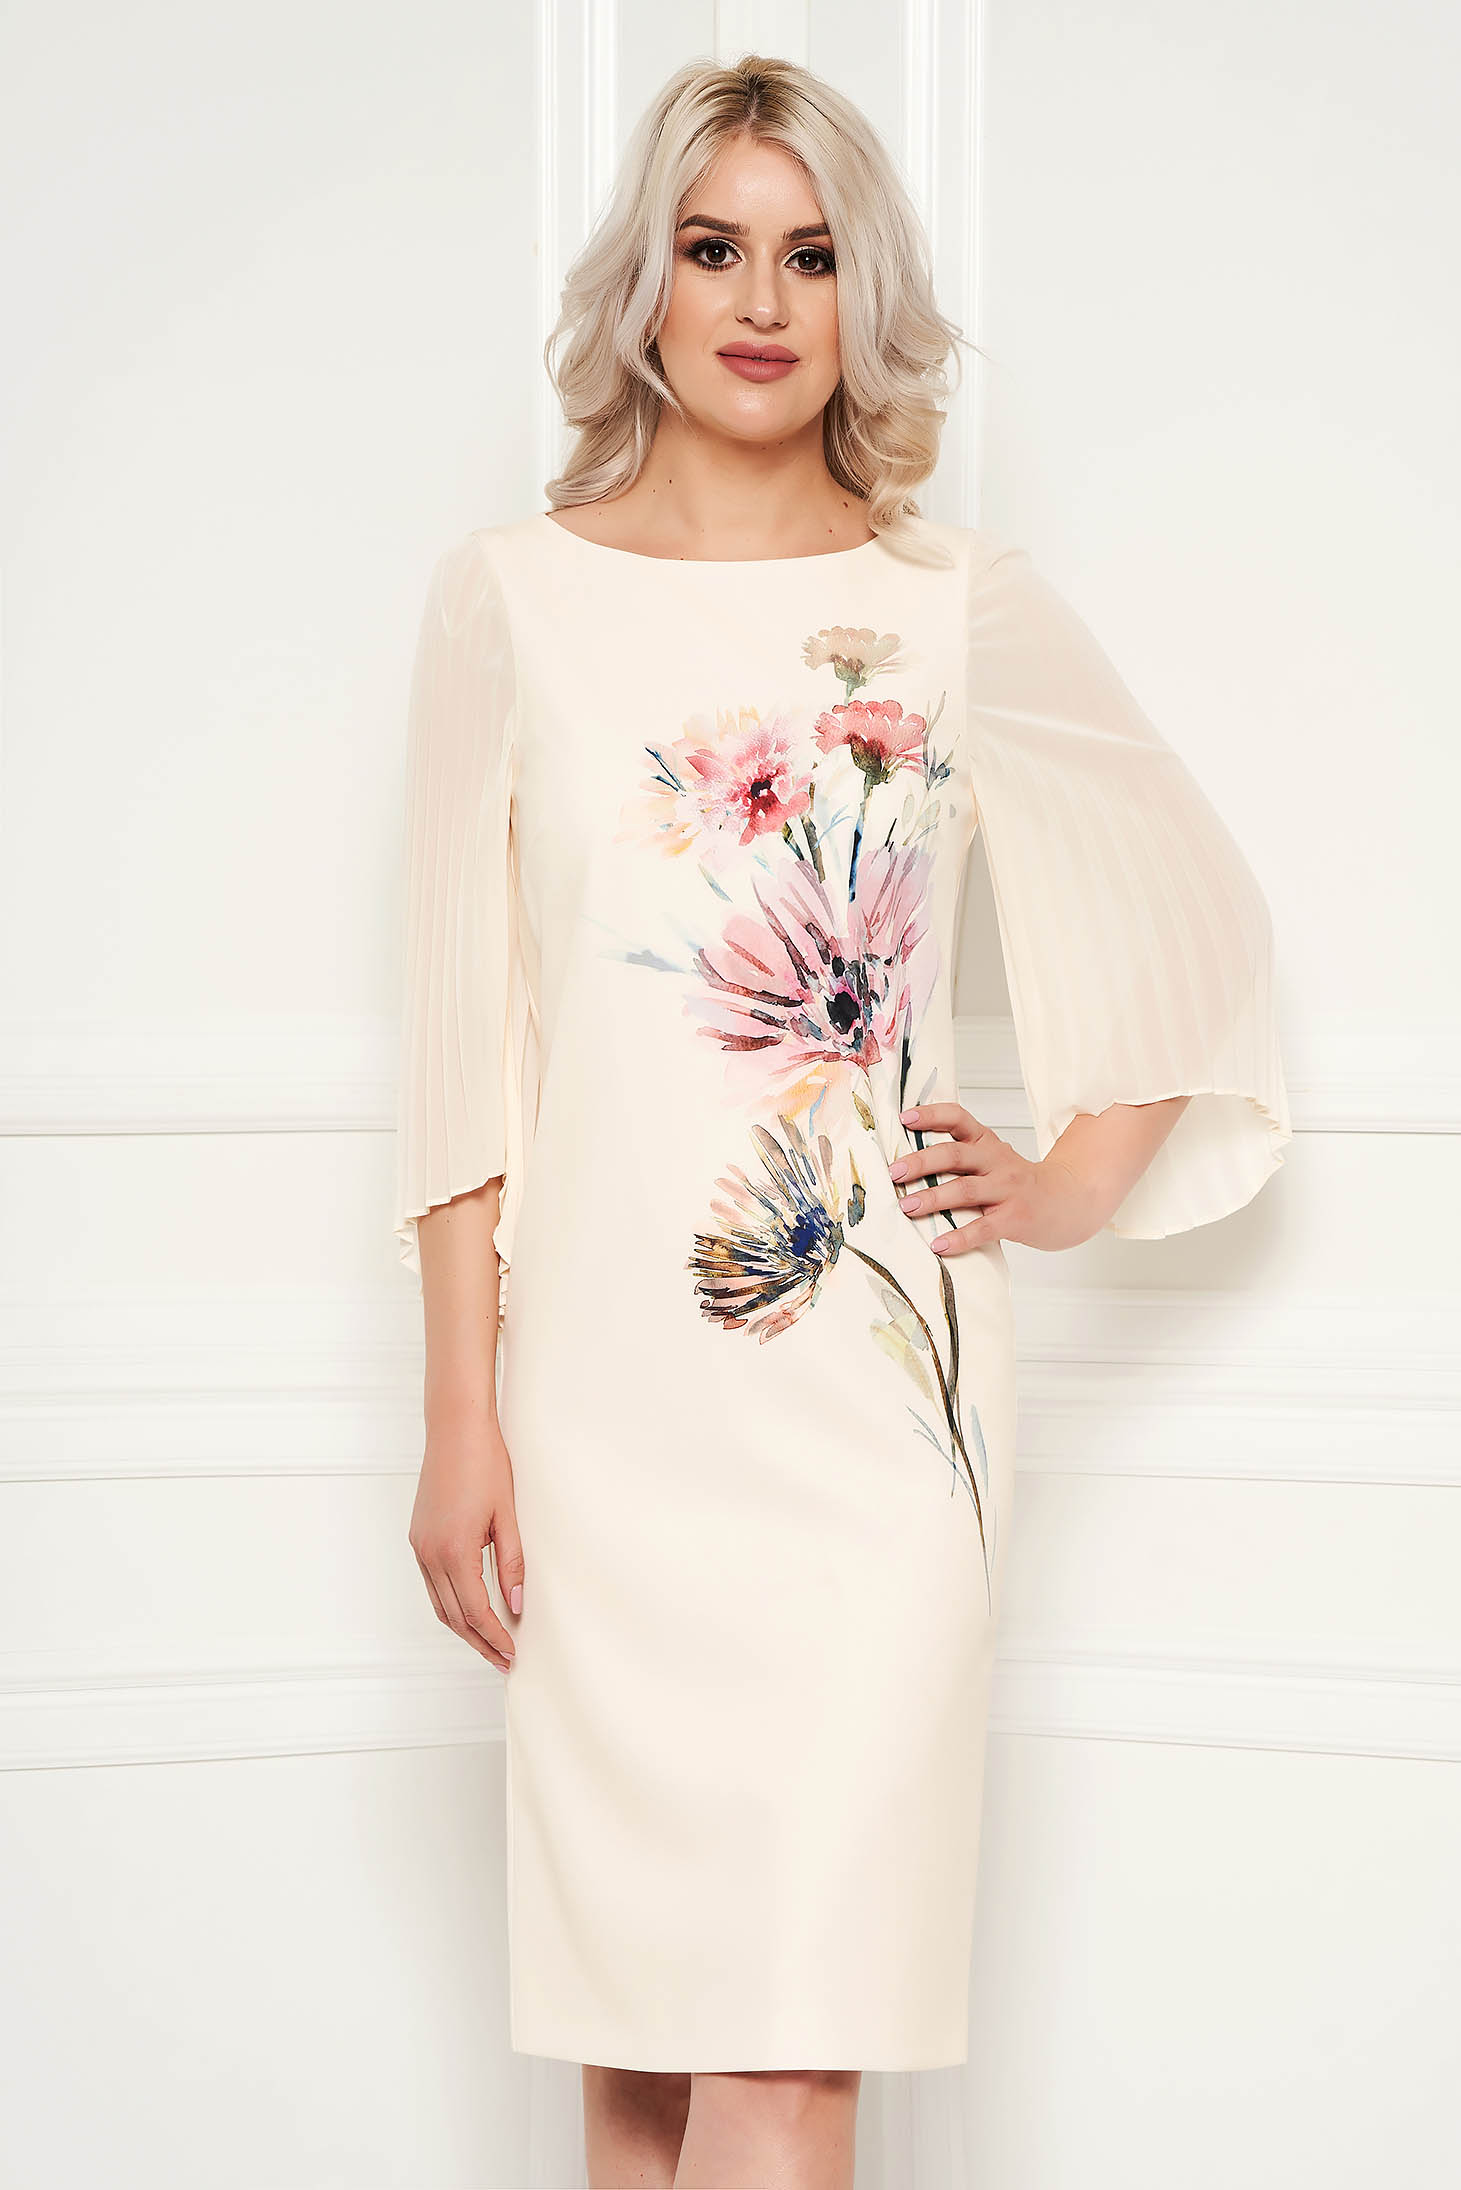 Cream dress elegant pencil midi with floral prints occasional with veil sleeves